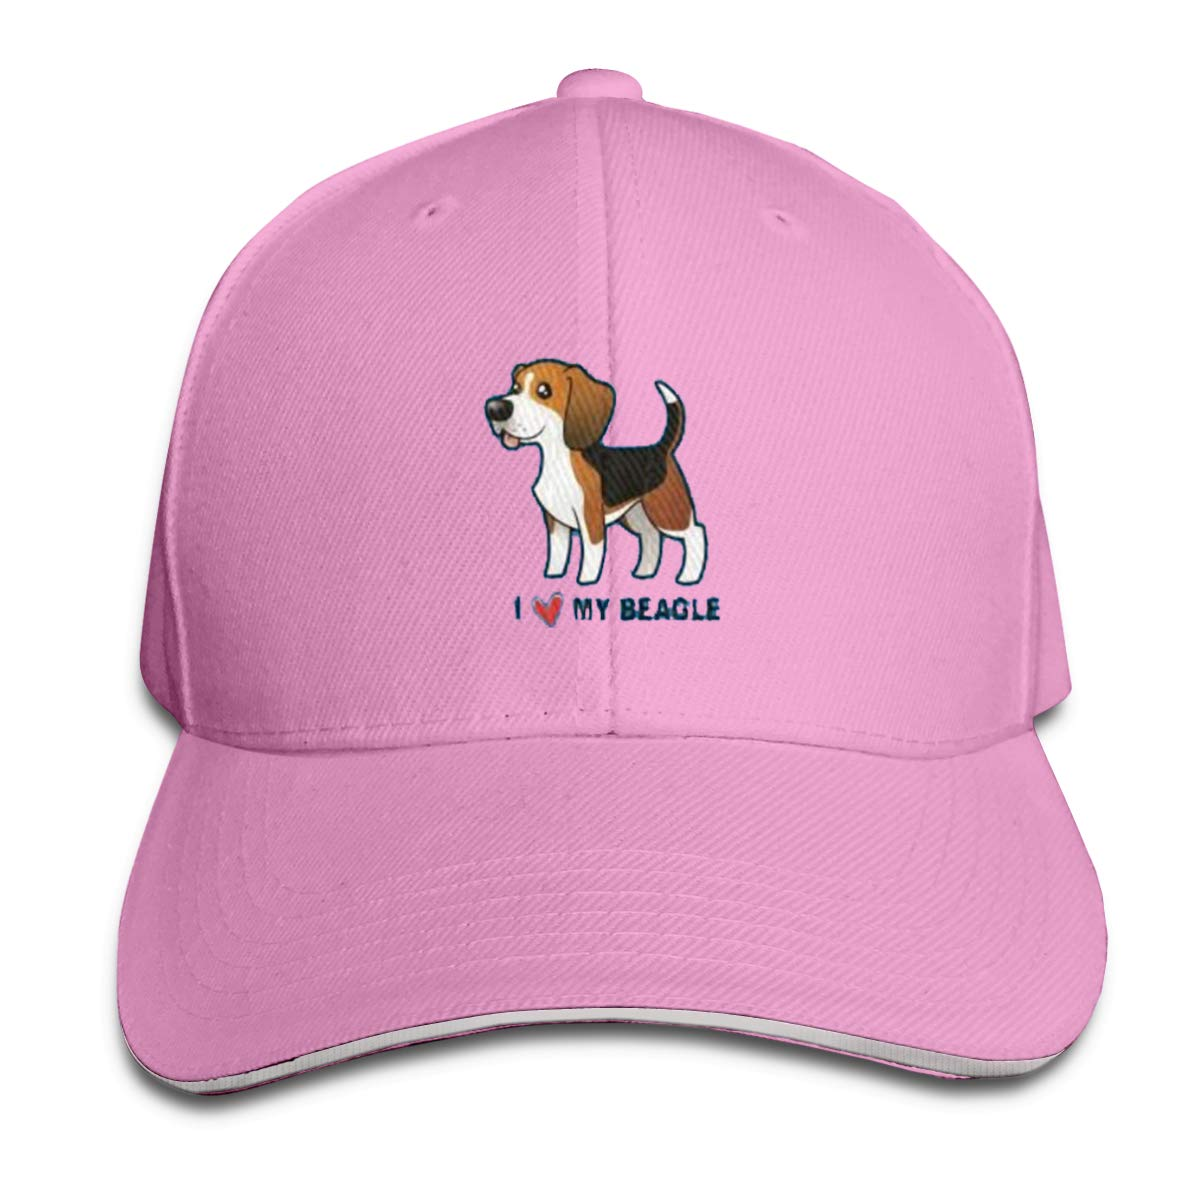 I Love My Beagle Classic Adjustable Cotton Baseball Caps Trucker Driver Hat Outdoor Cap Pink